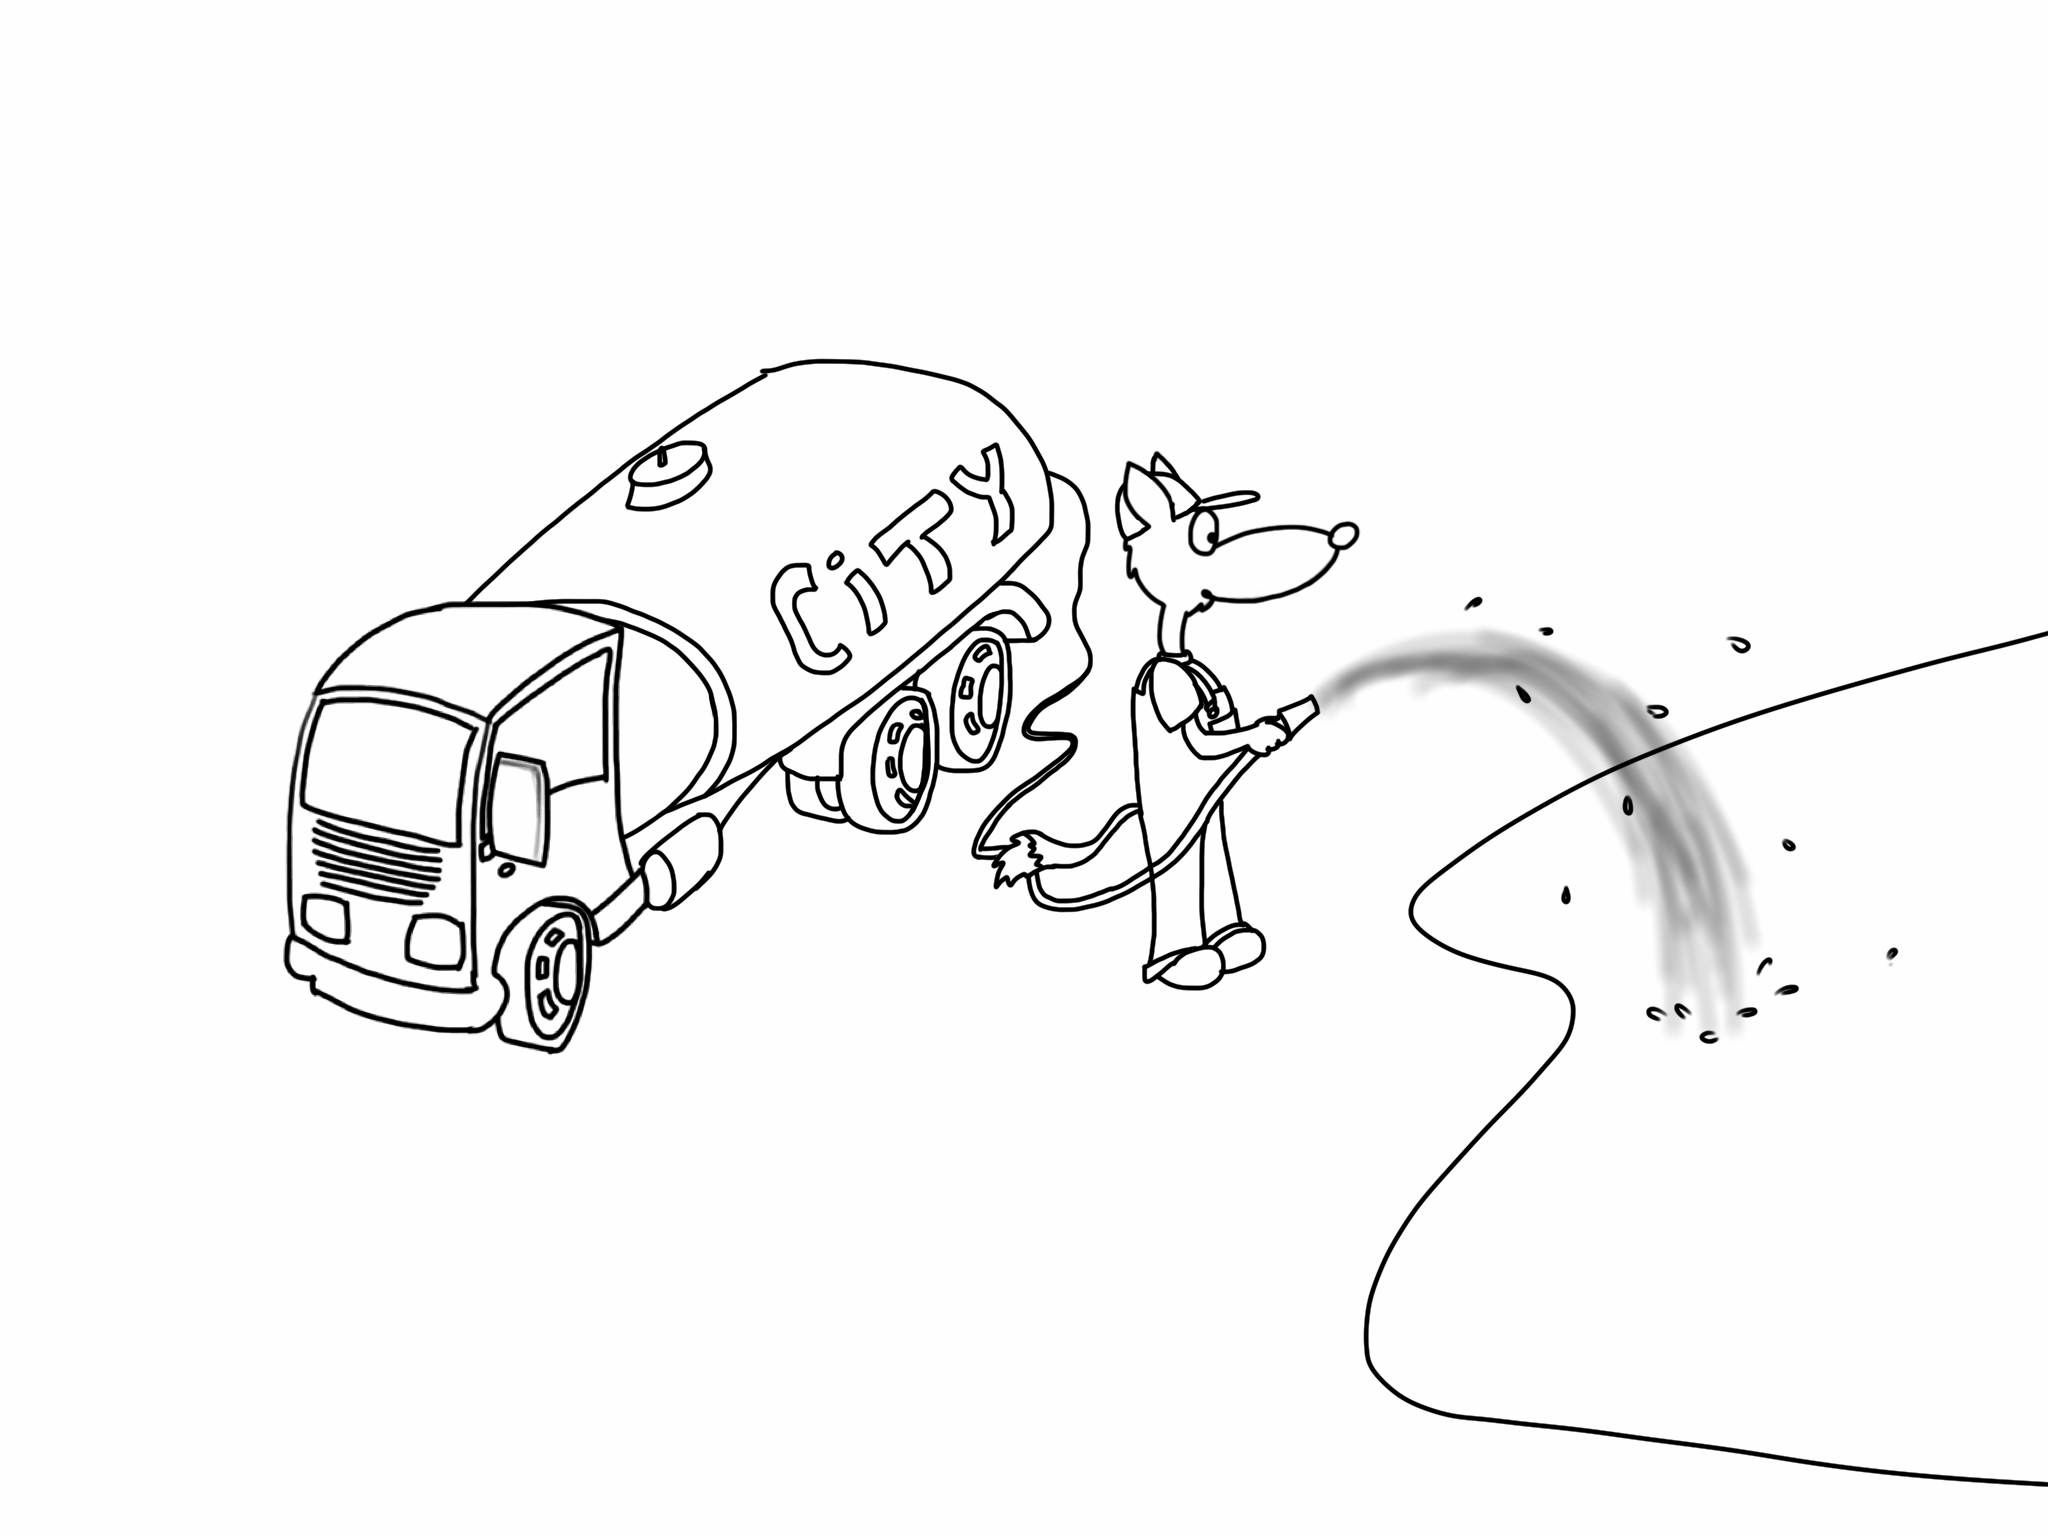 water truck coloring pages - photo#12